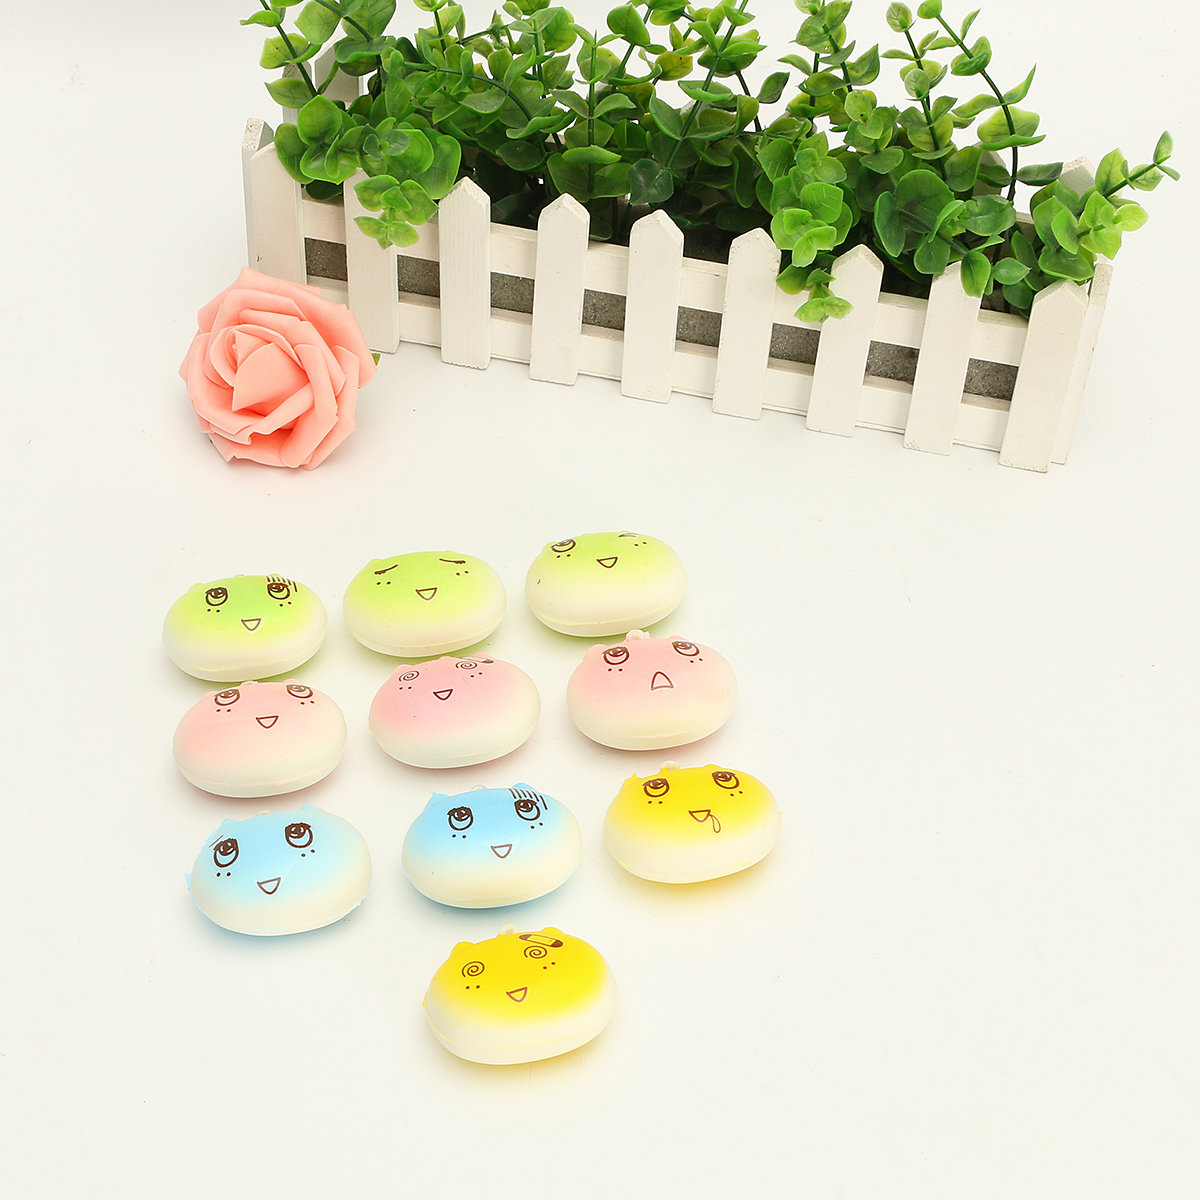 1PCS Newest Kawaii Face Simulate Colorful Cartoon Totoro Squishy Toy Stress Reliever Phone Chain